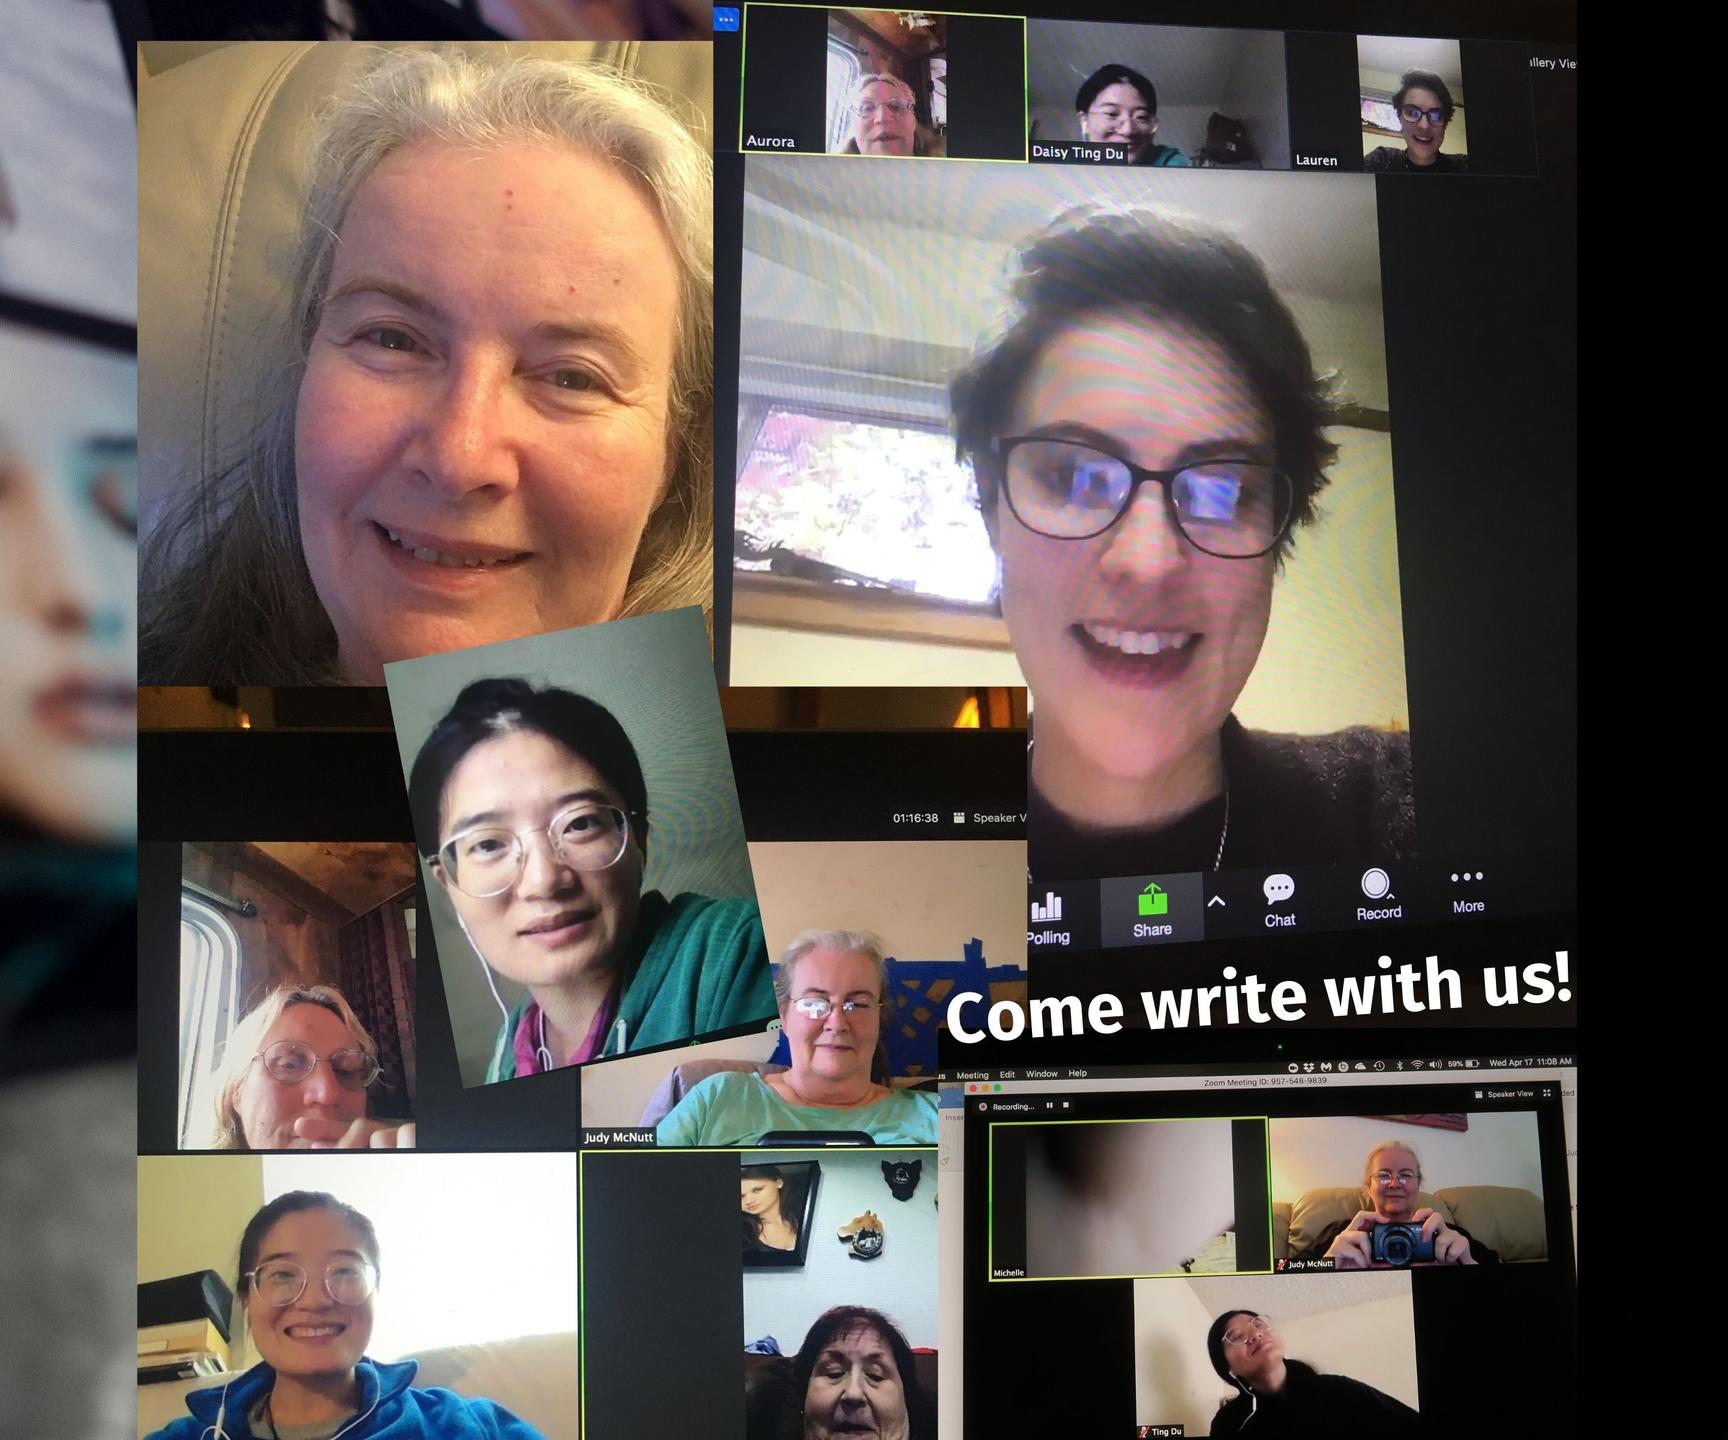 Come write with us.